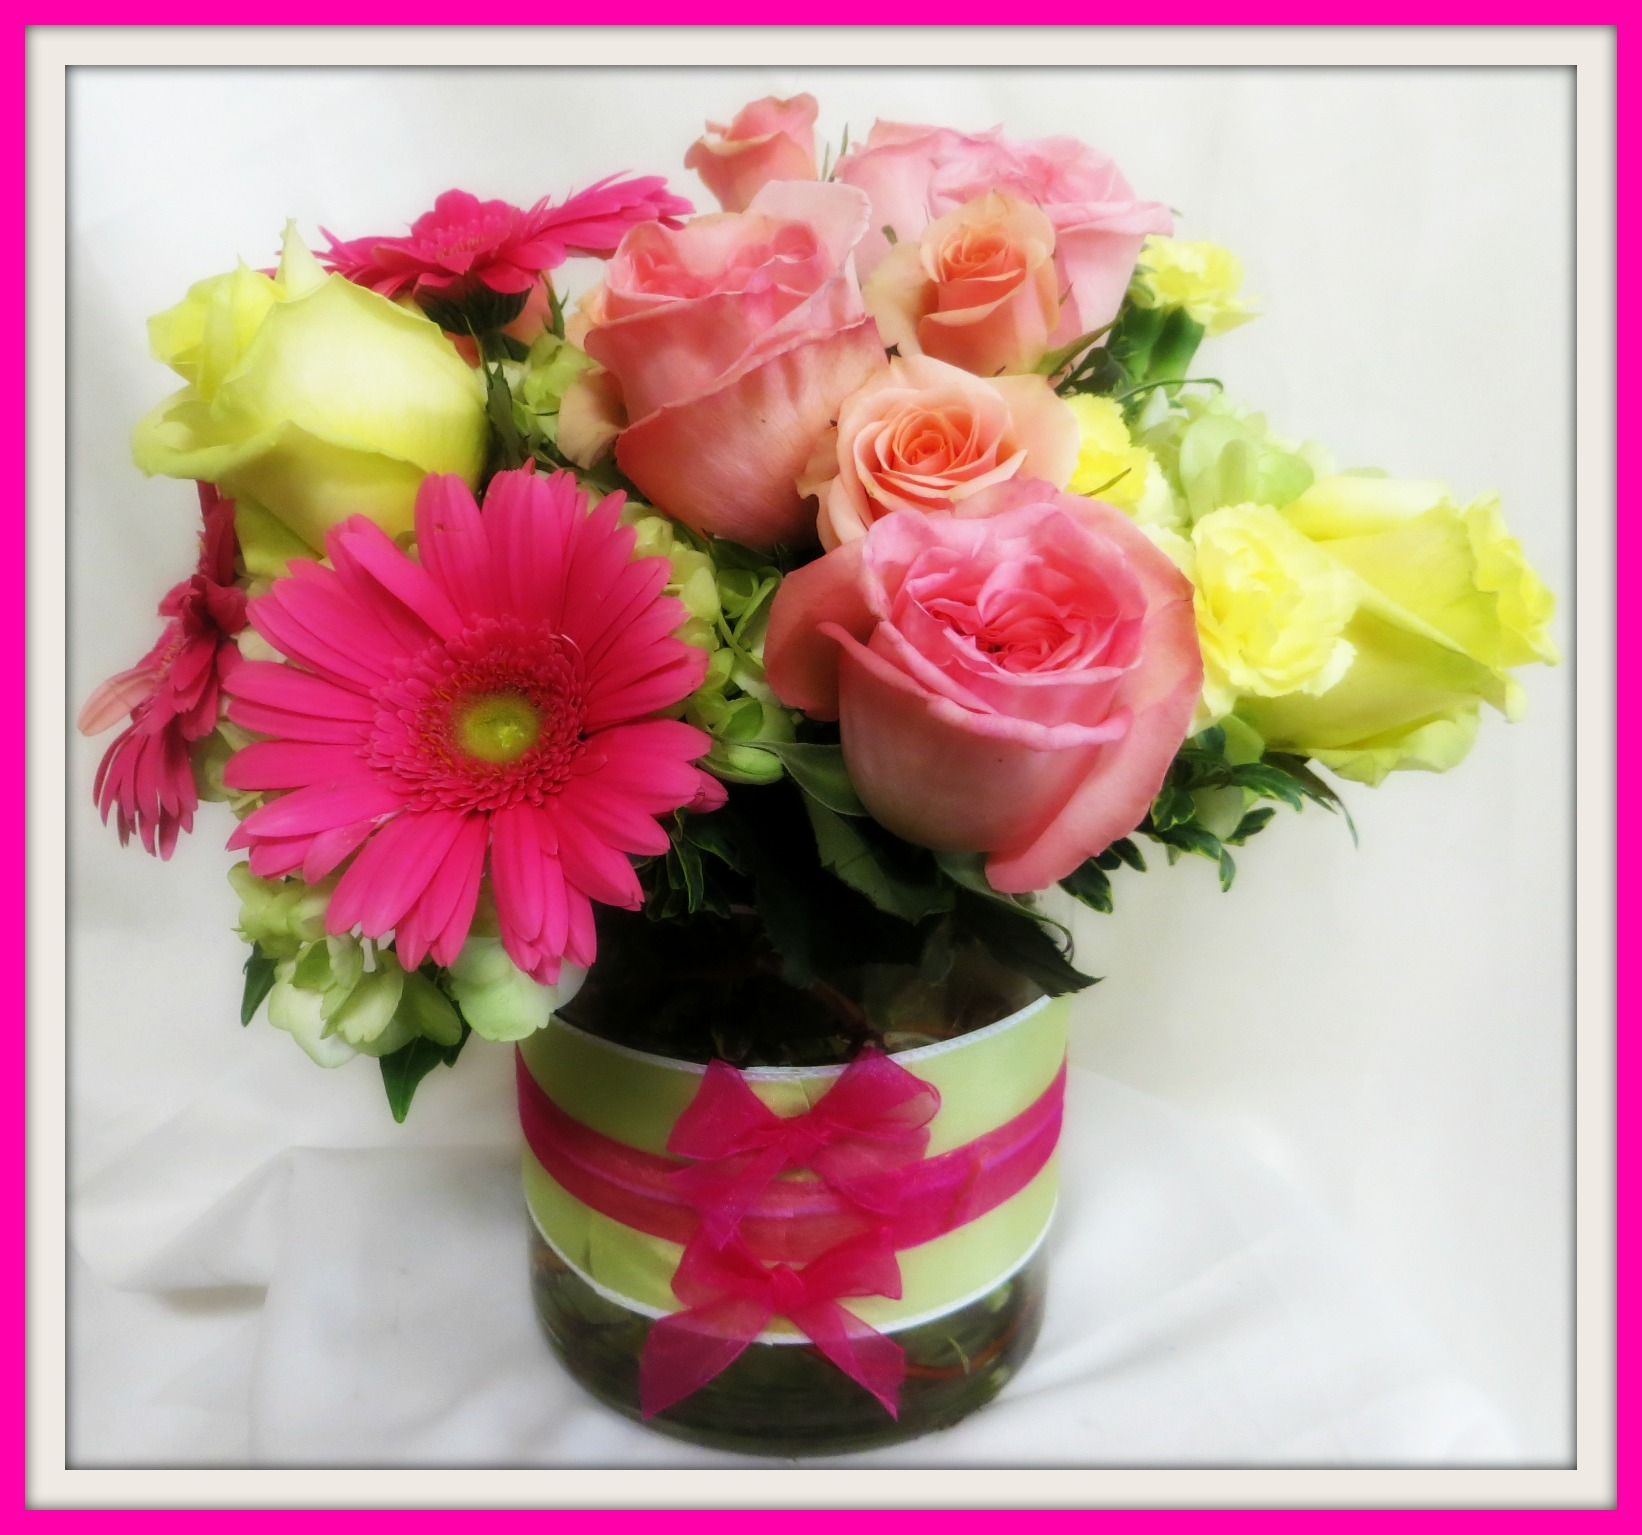 clear-lake-florist-flowers-lush-tx.jpg